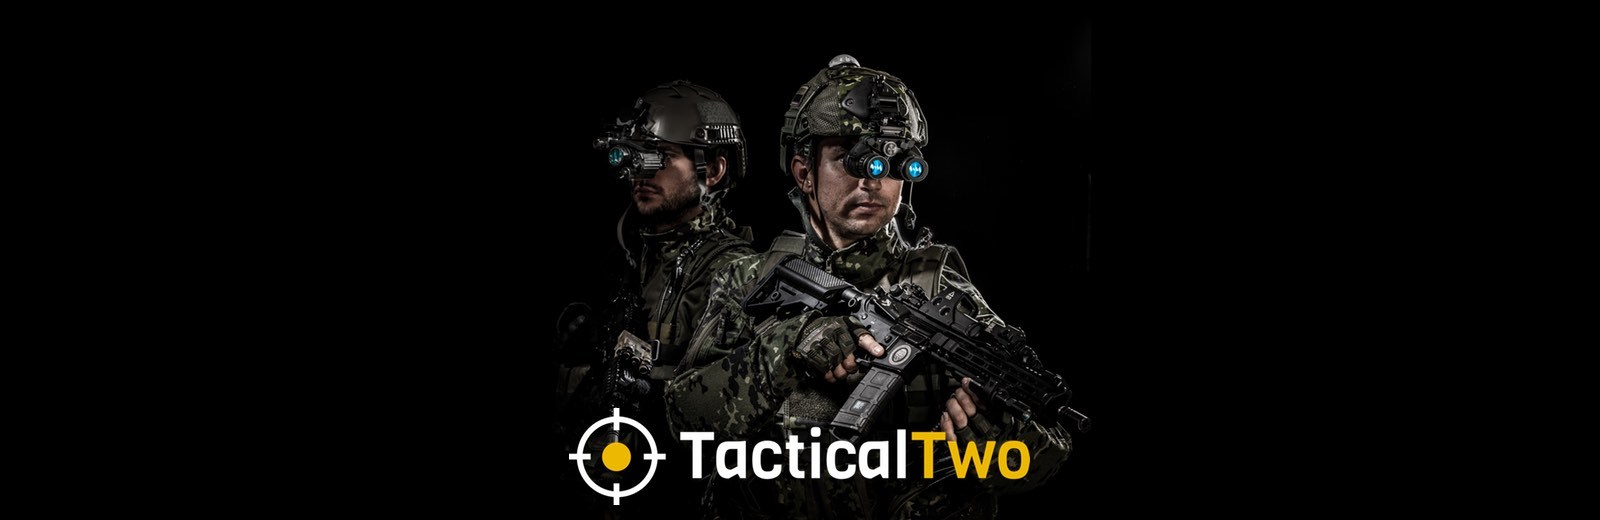 TacticalTwo Store